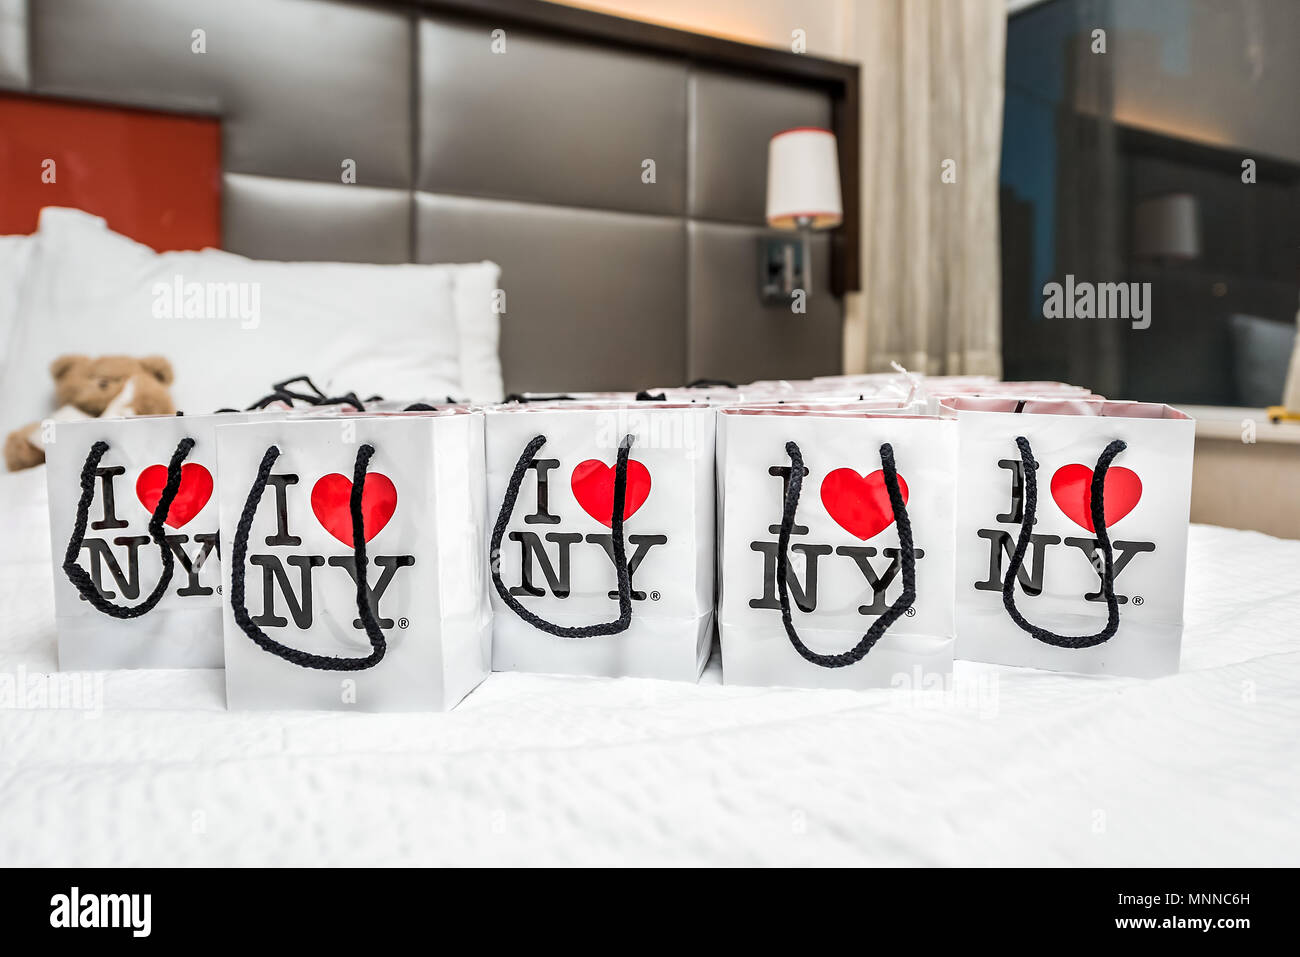 Hotel Room Bags Bed Stock Photos & Hotel Room Bags Bed Stock Images ...